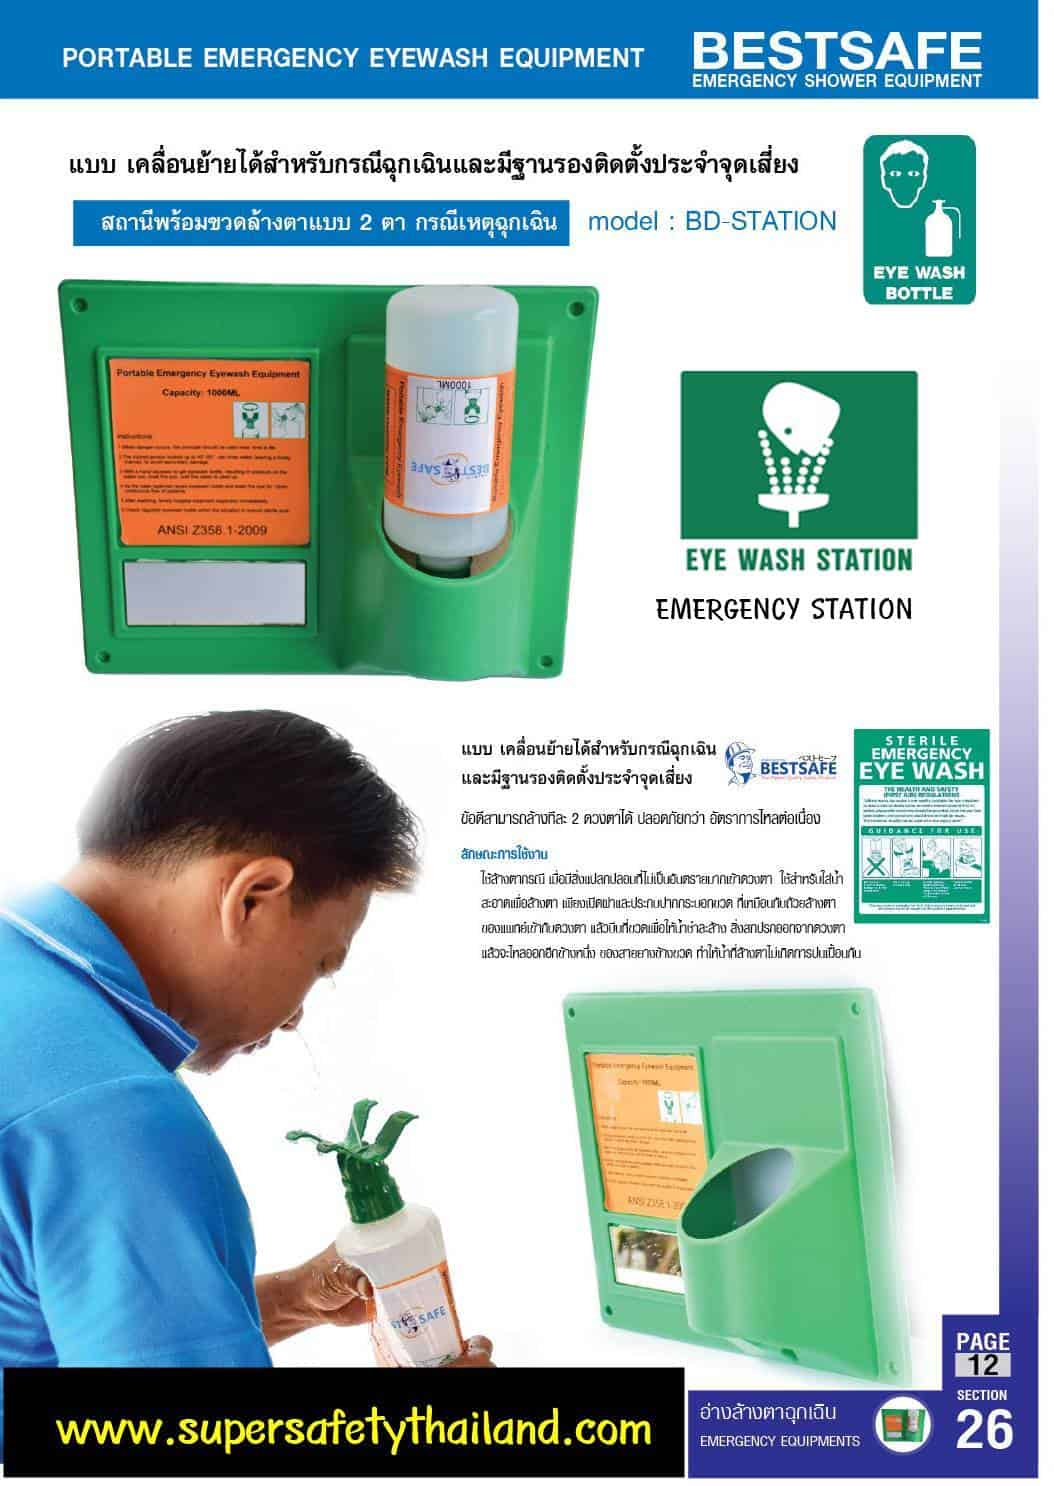 https://www.supersafetythailand.com/wp-content/uploads/2017/04/Sec26-p11-12-emergency-show-Copy-1.jpg